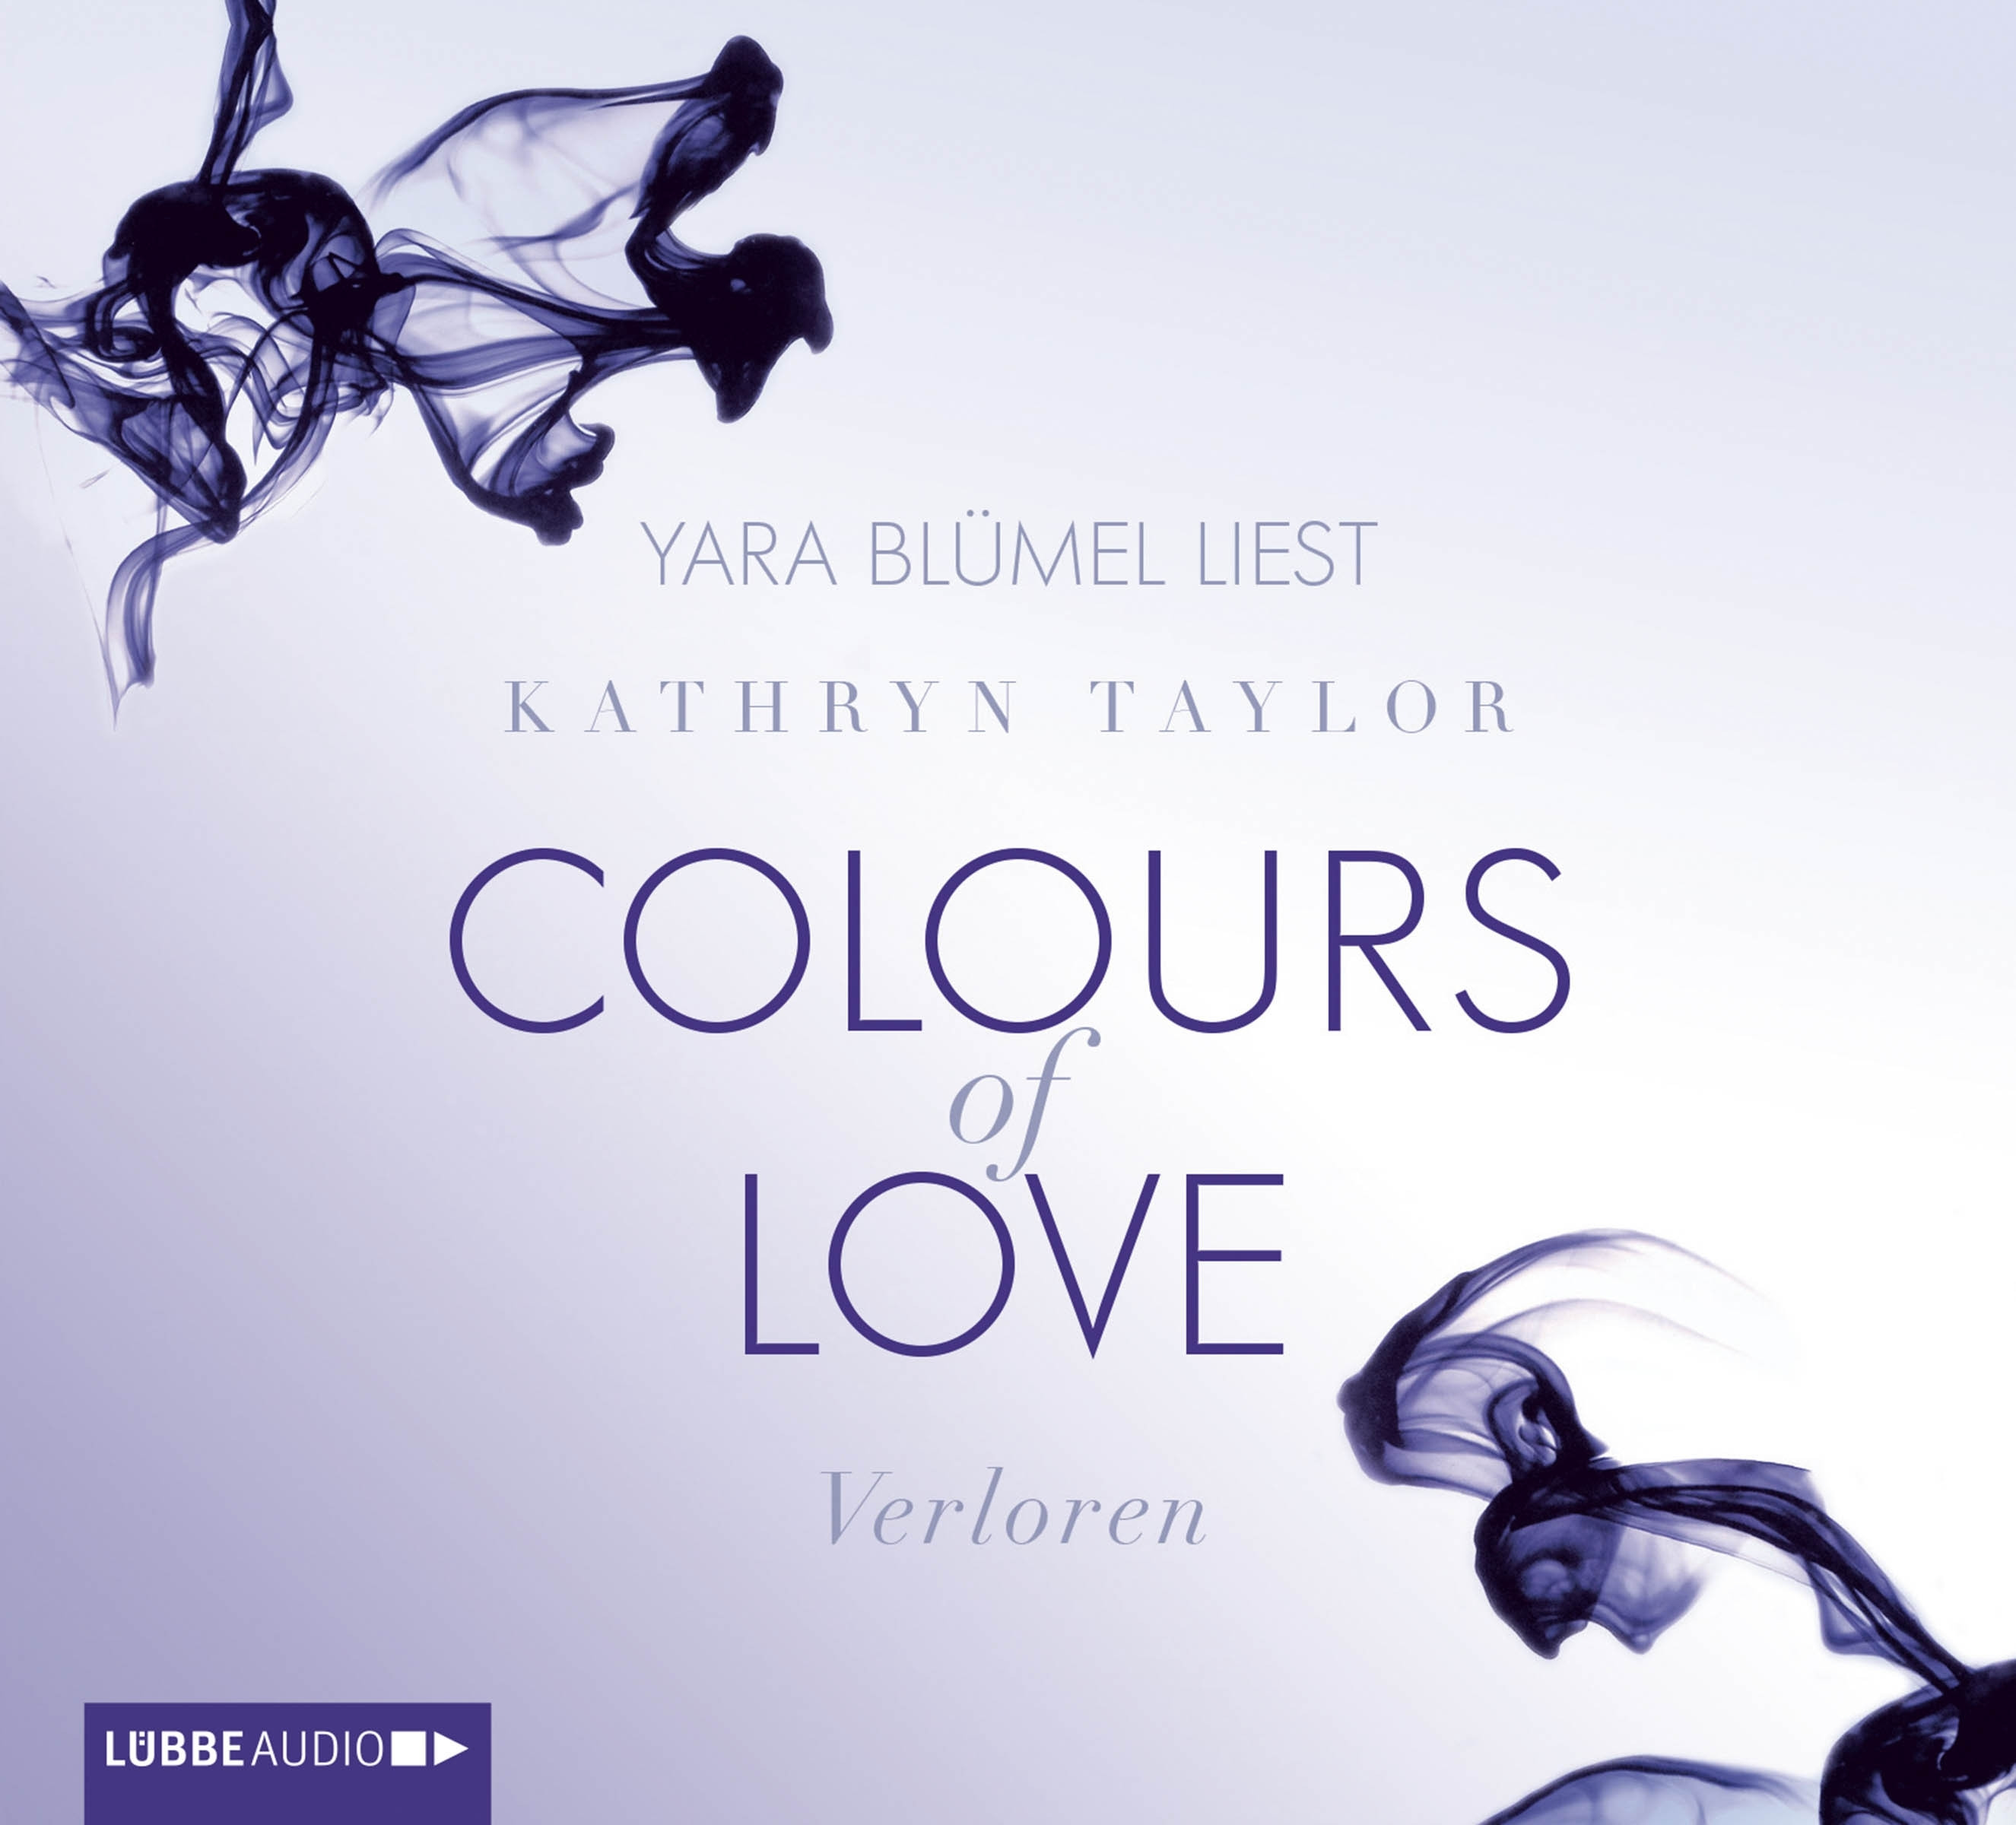 Kathryn Taylor - Colours of Love - Band 3: Verloren